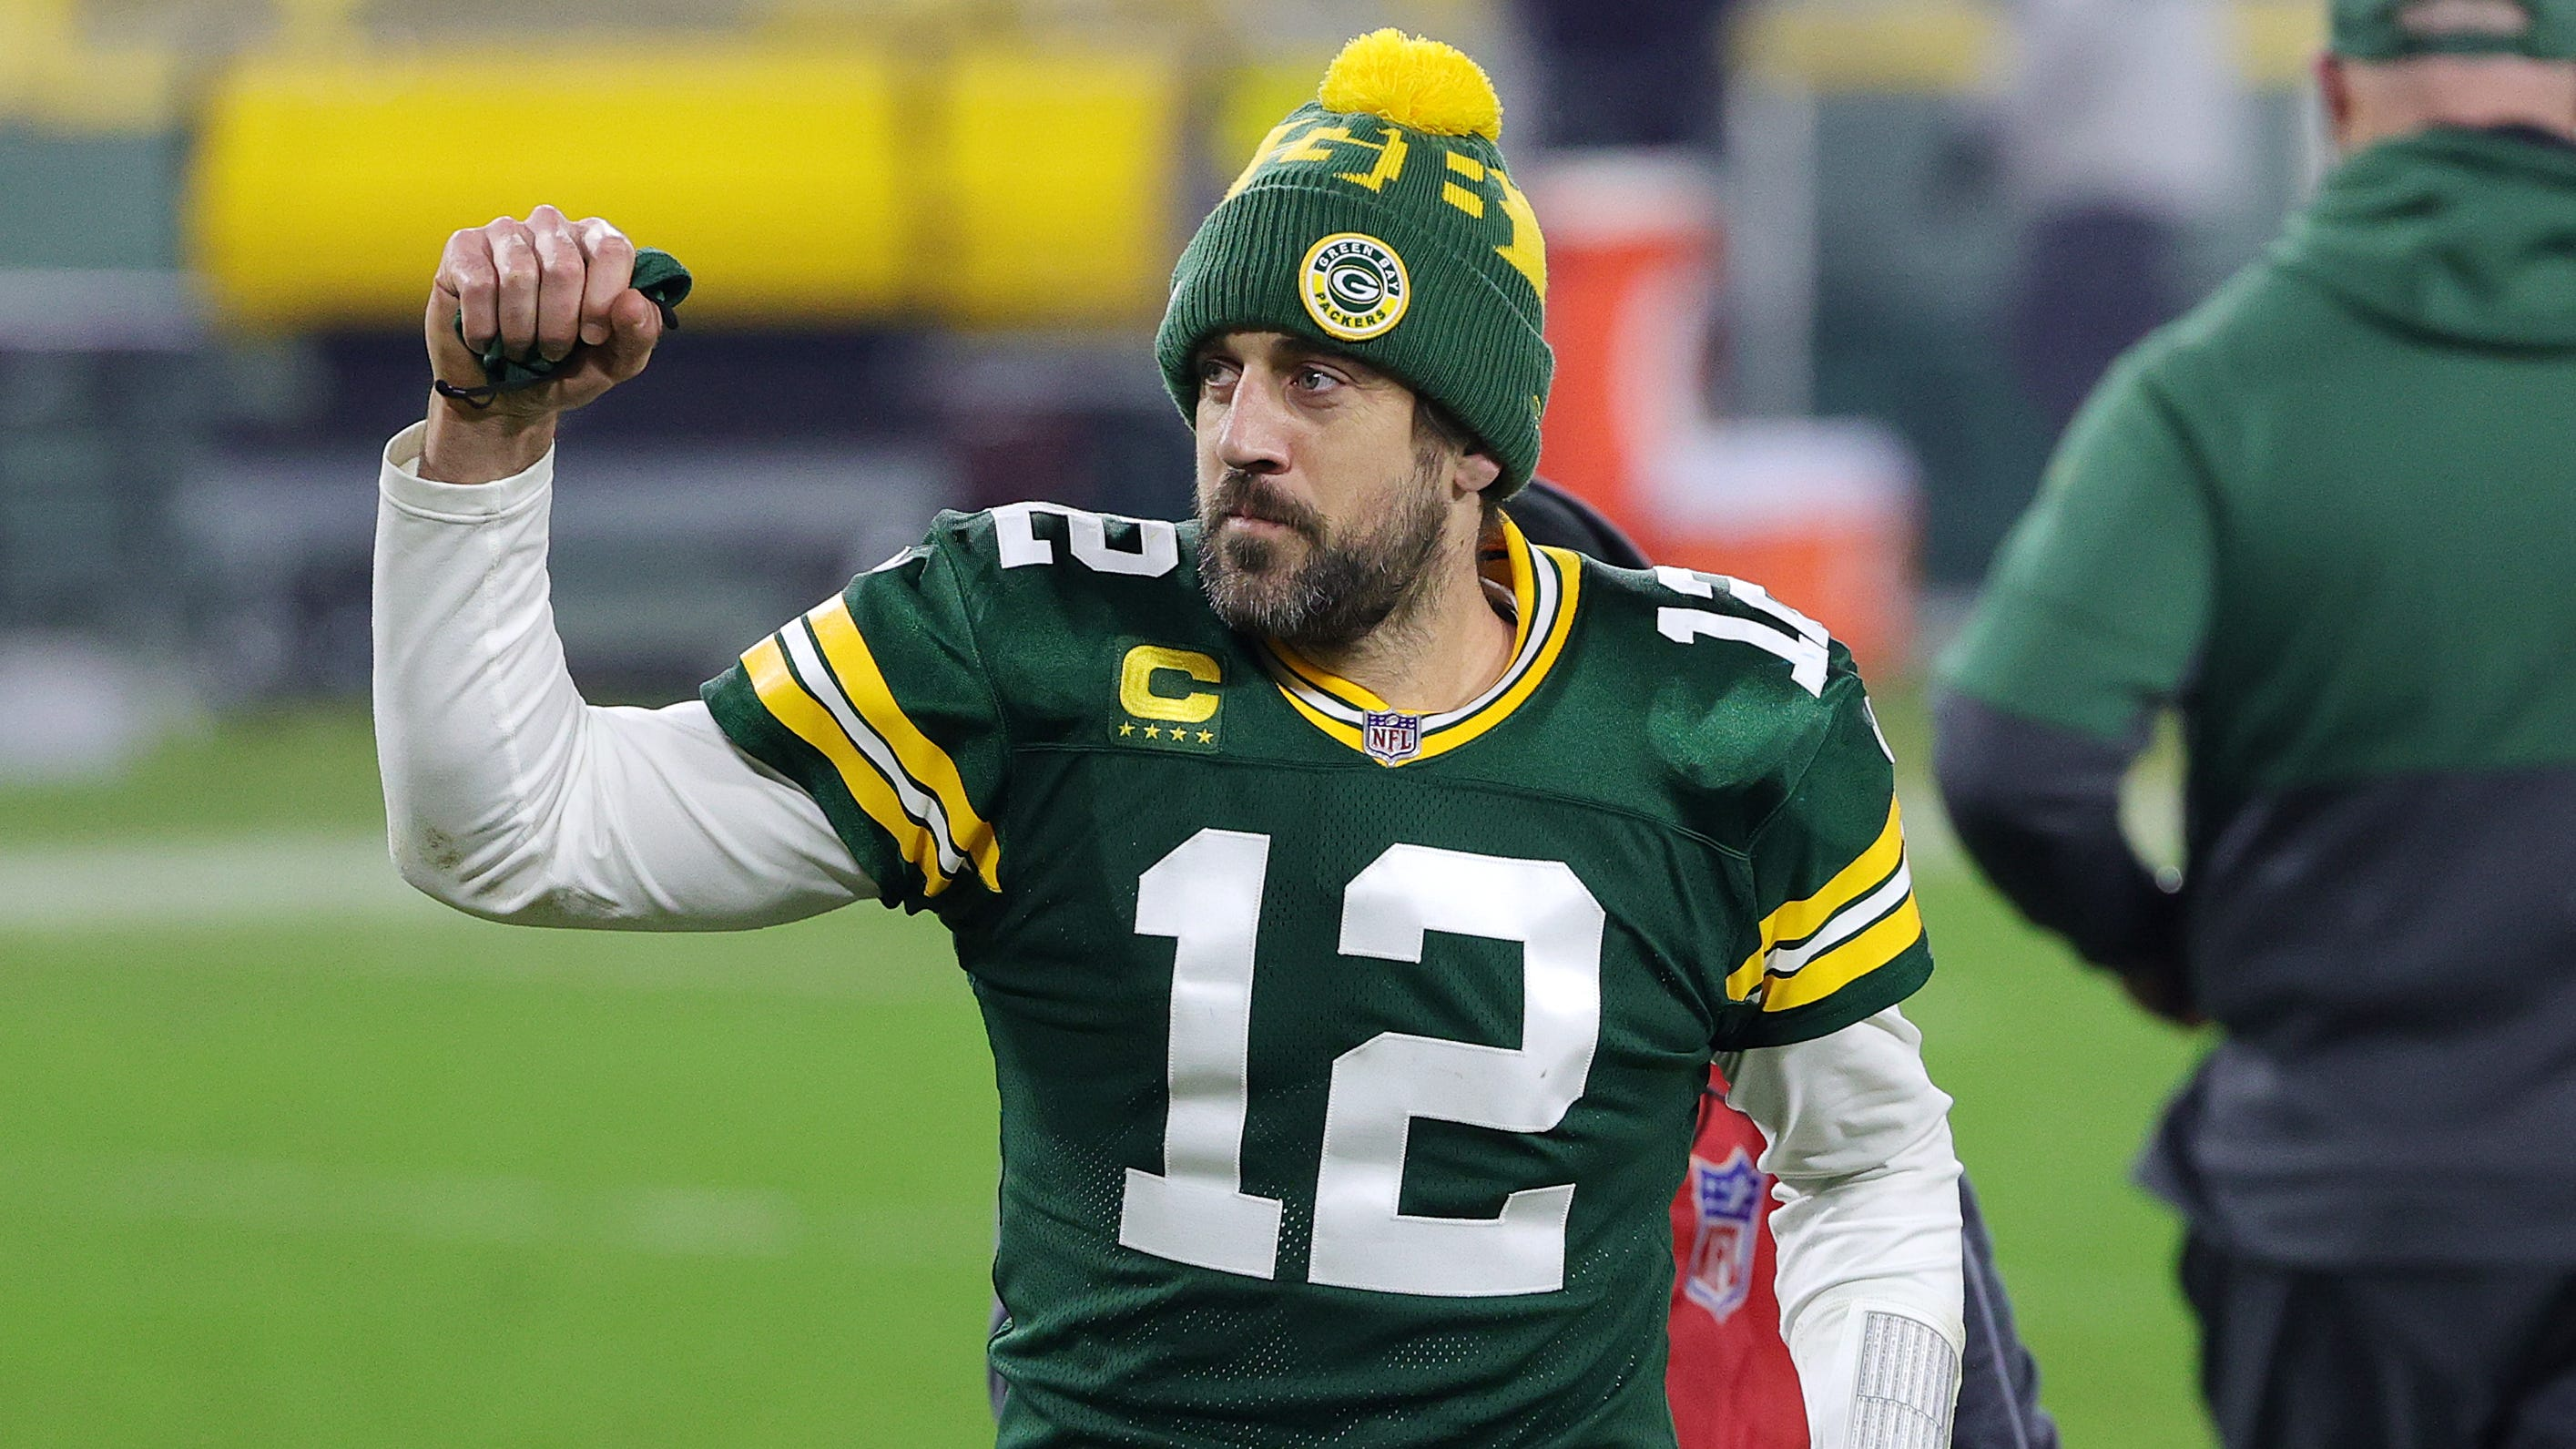 Aaron Rodgers closing in on reworked contract with Green Bay Packers as part of 2021 return